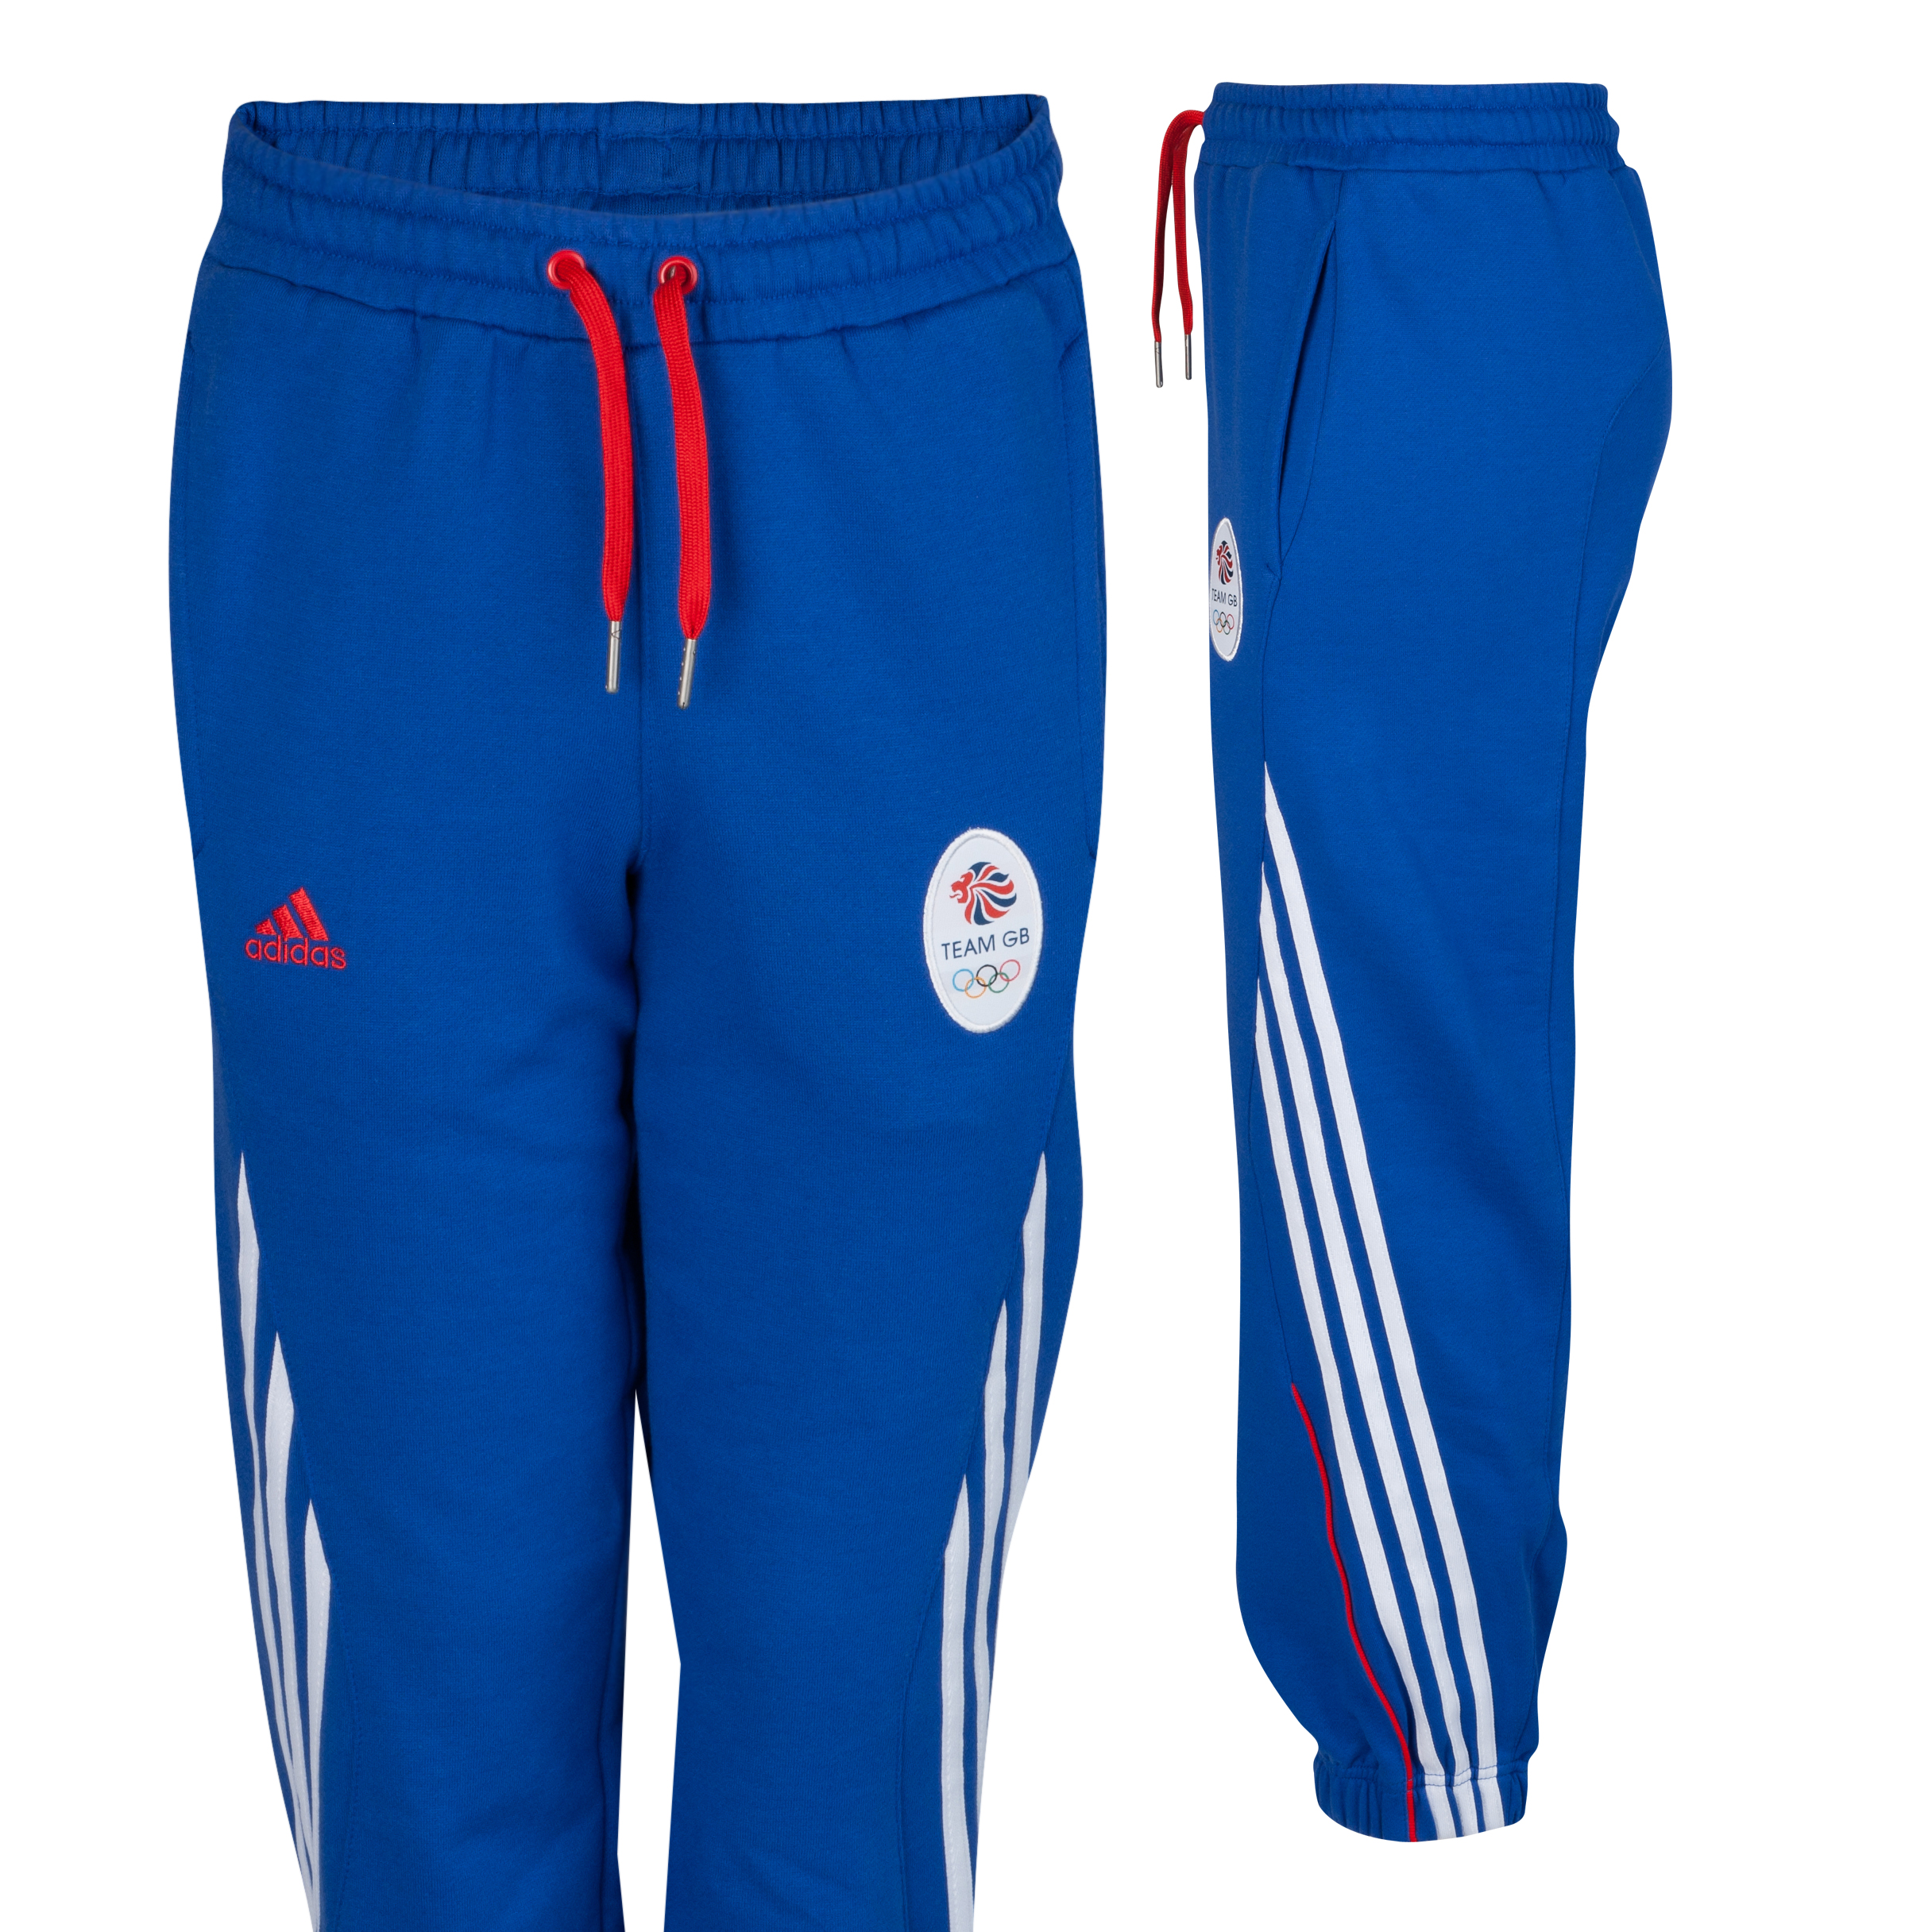 adidas Team GB Knit Pant - Victory Blue S07/White/Vivid Red F04 - Youths